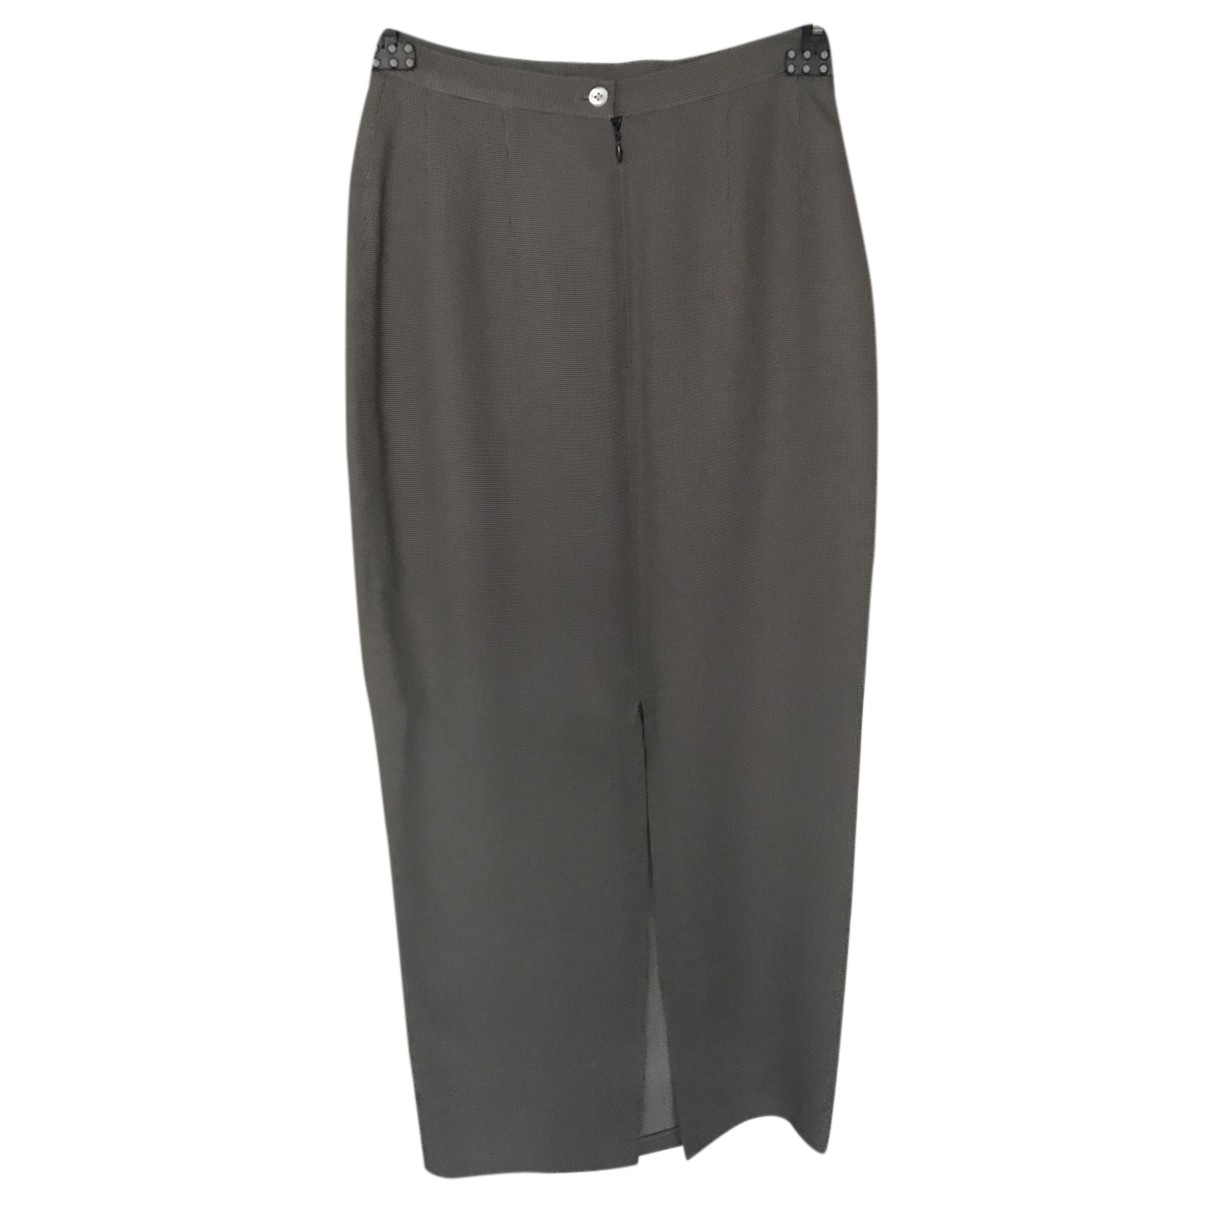 Cacharel N Grey skirt for Women 36 FR